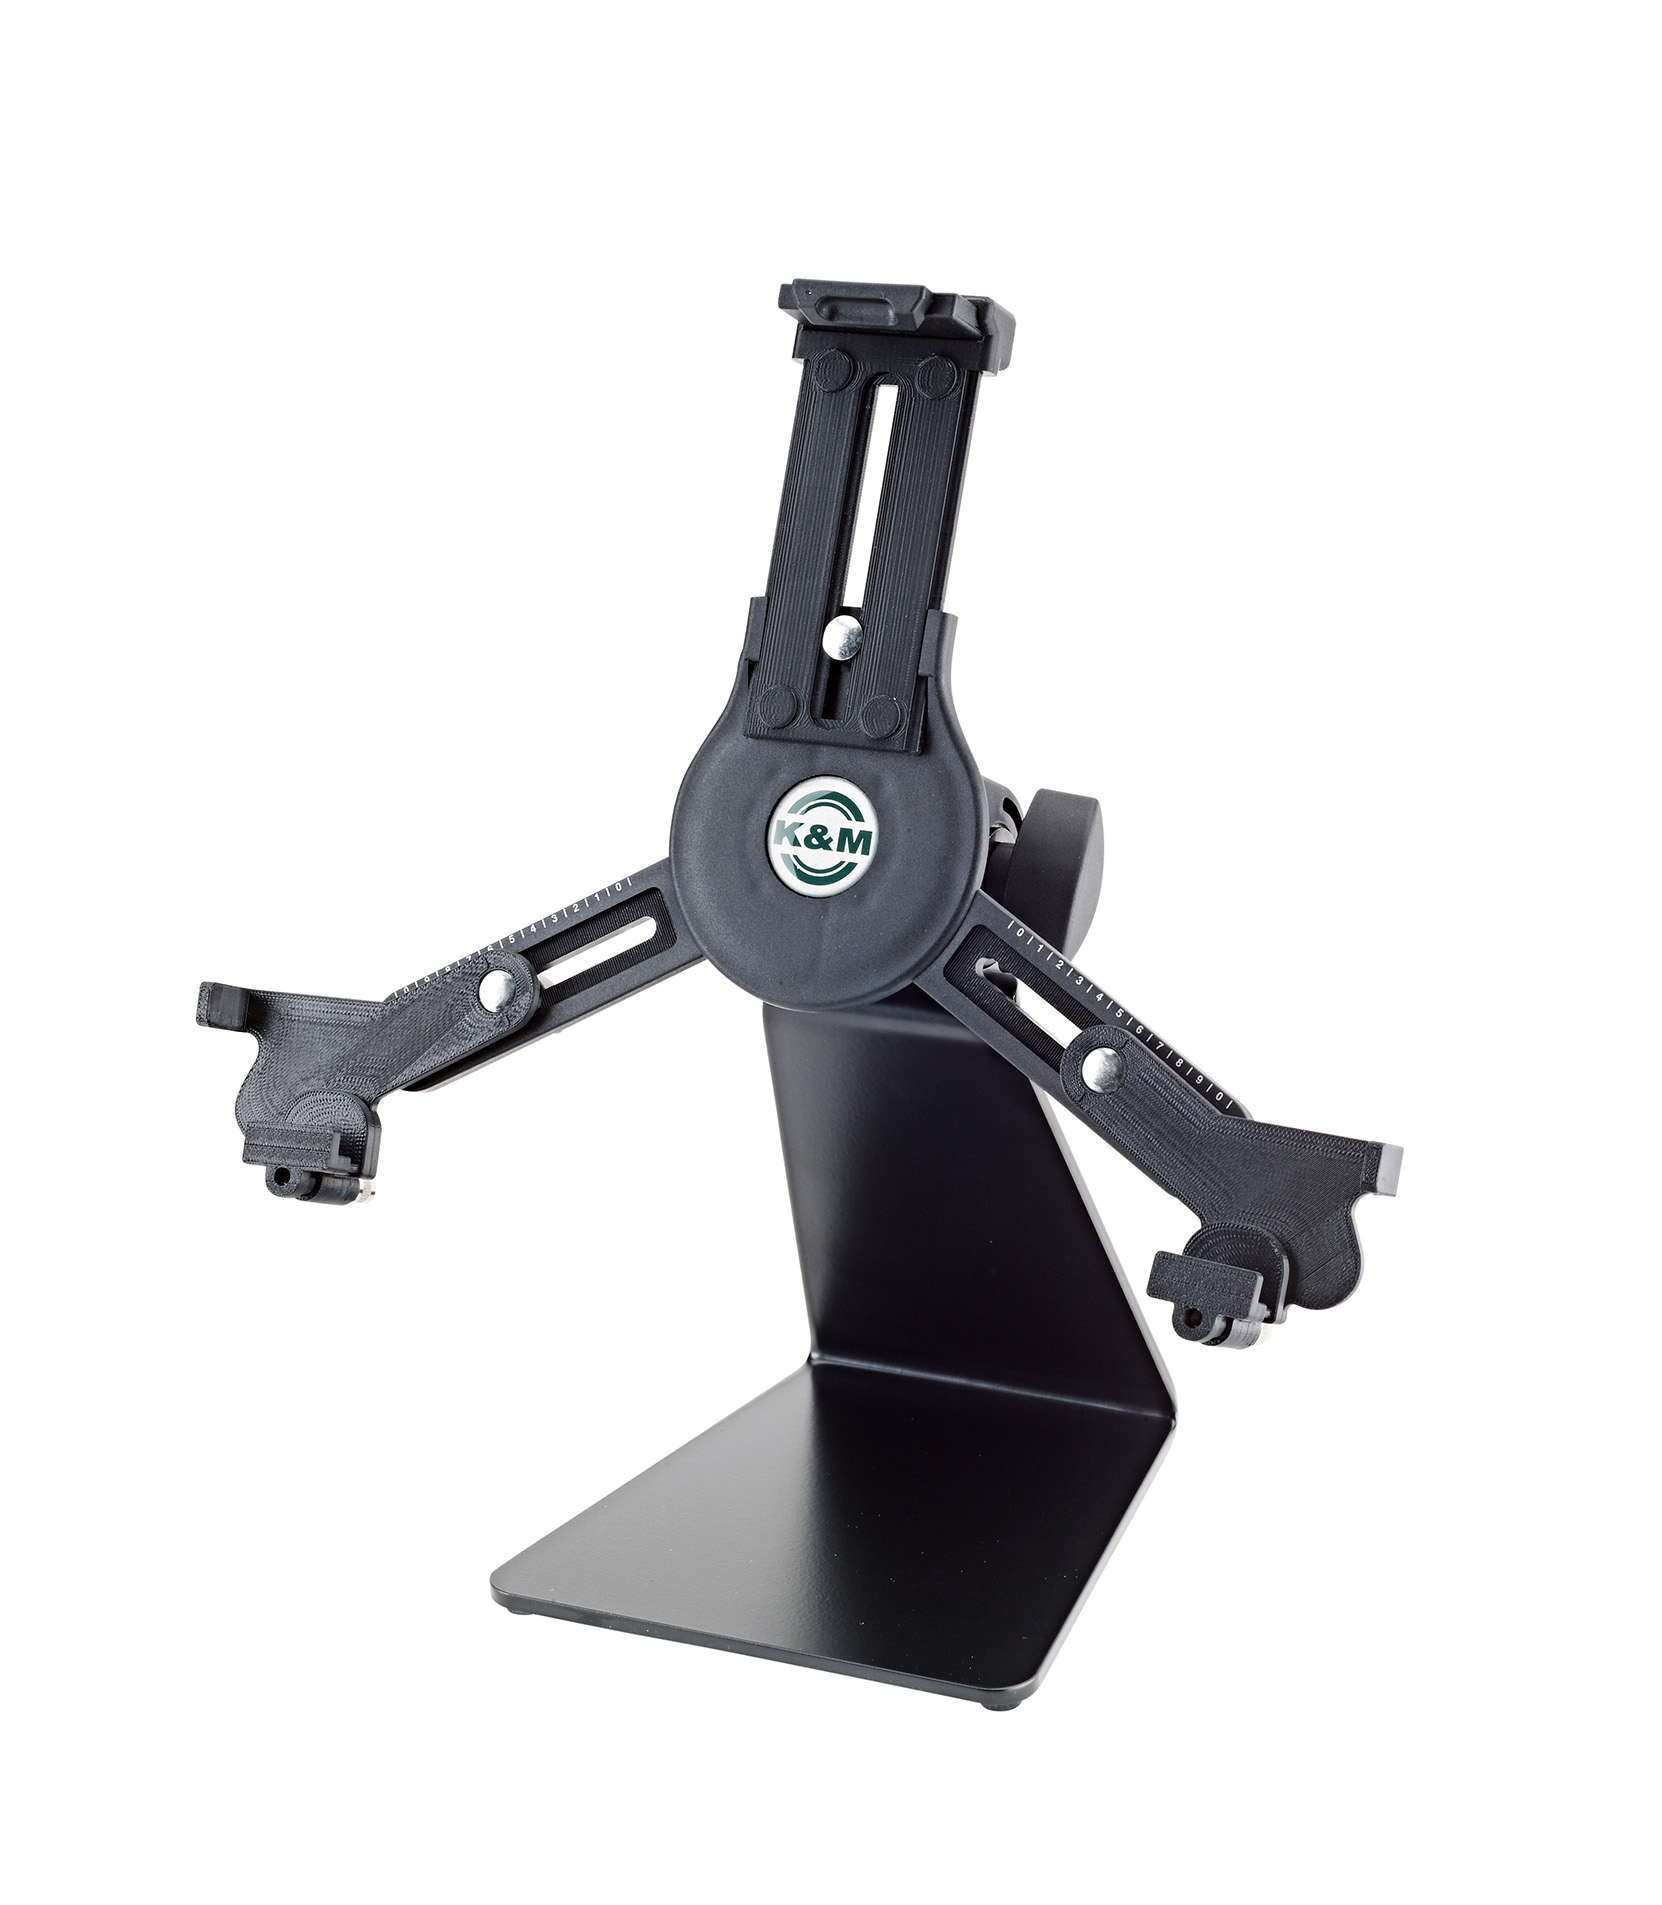 Buy K&M - 19792 000 55 Table Stand w Universal Tablet Holder